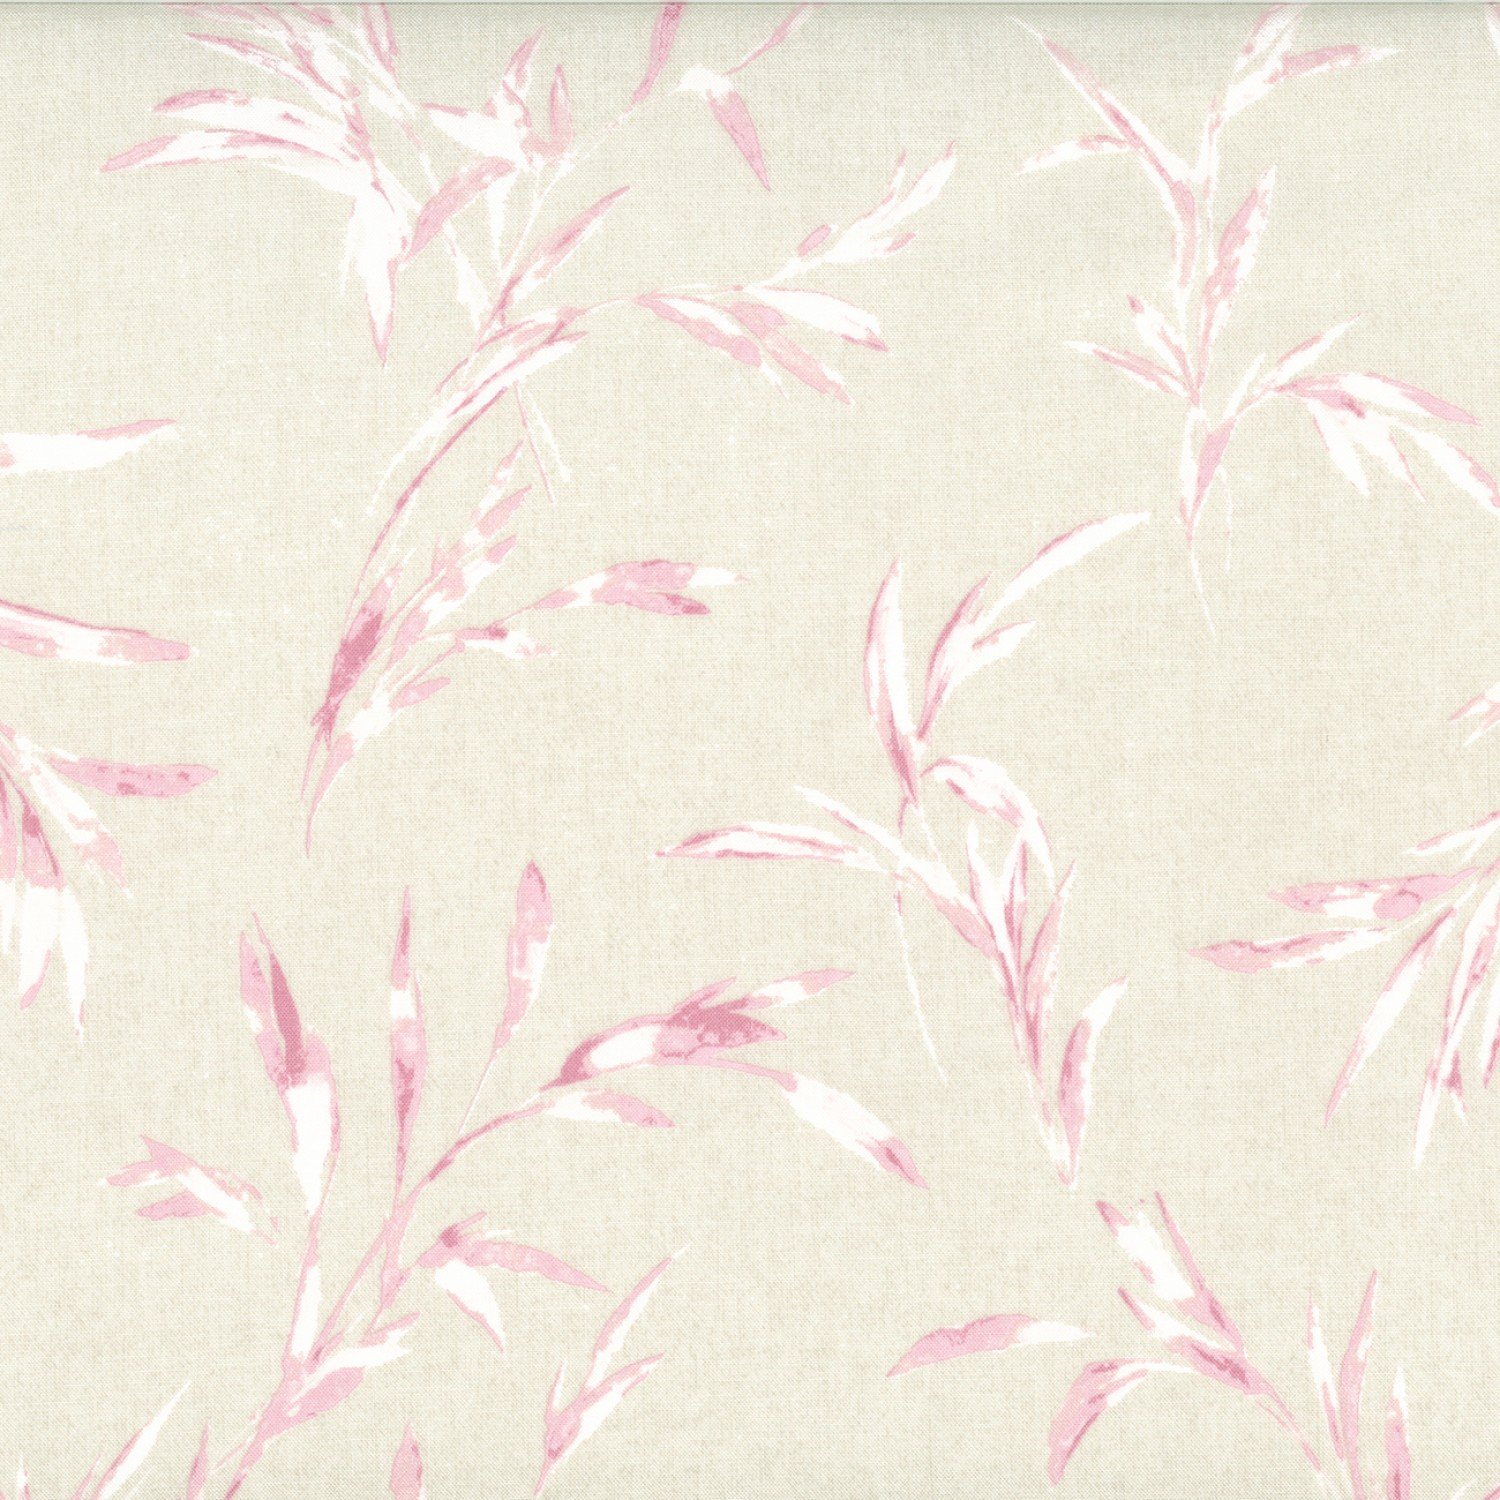 Centenary Collection - Cream w/Pink Leaves